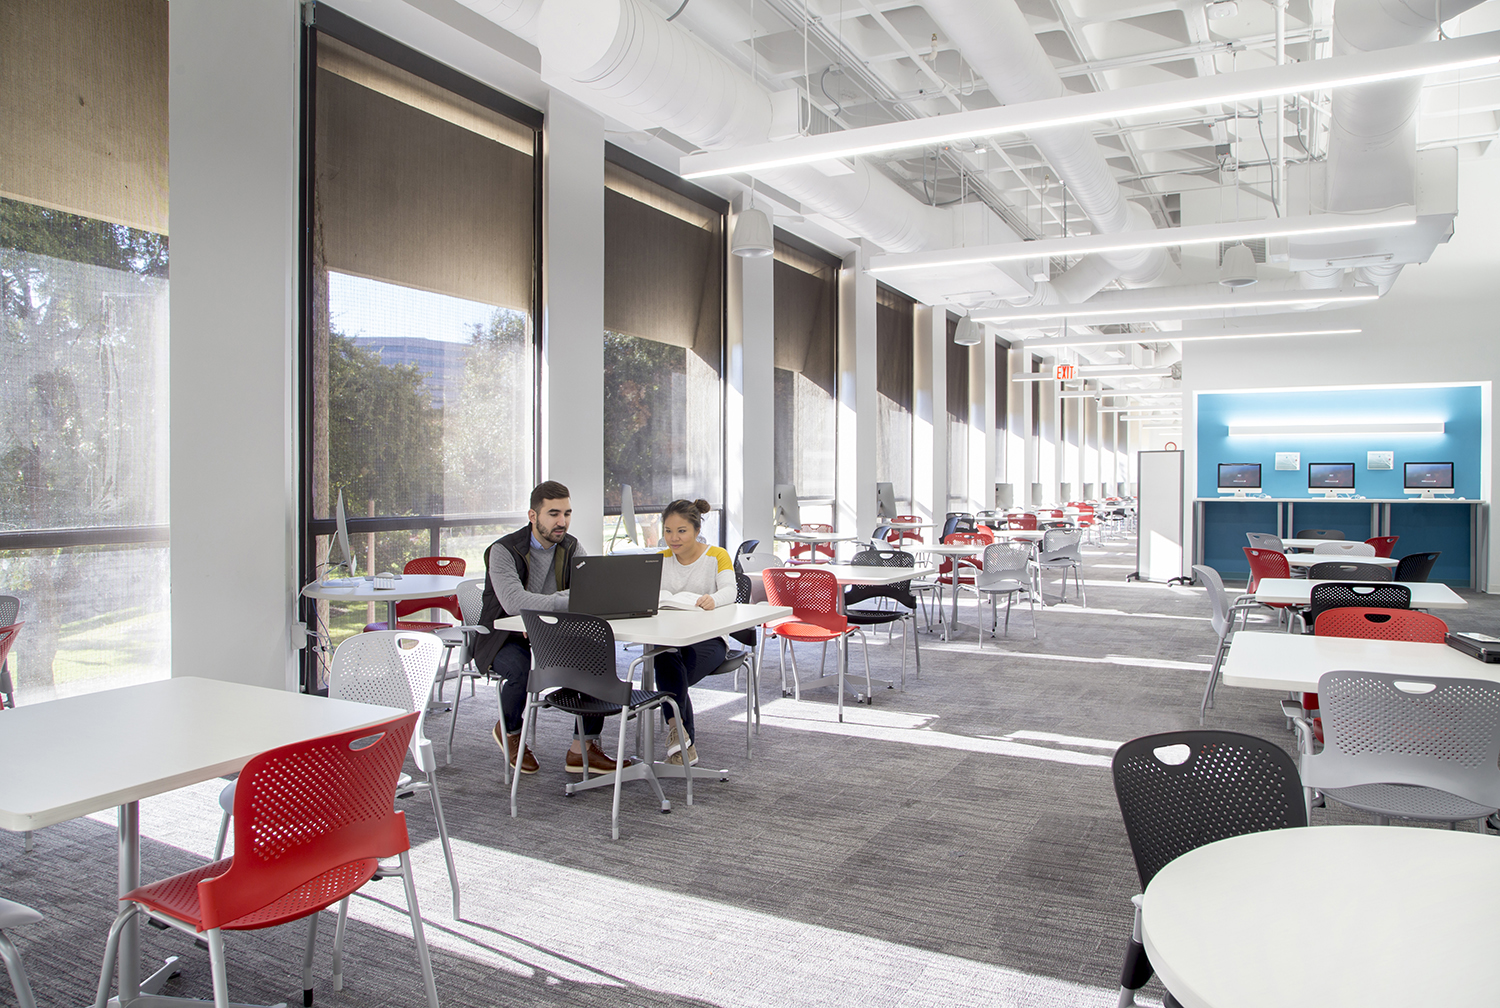 University Writing Center consultation area. Image courtesy Gensler.